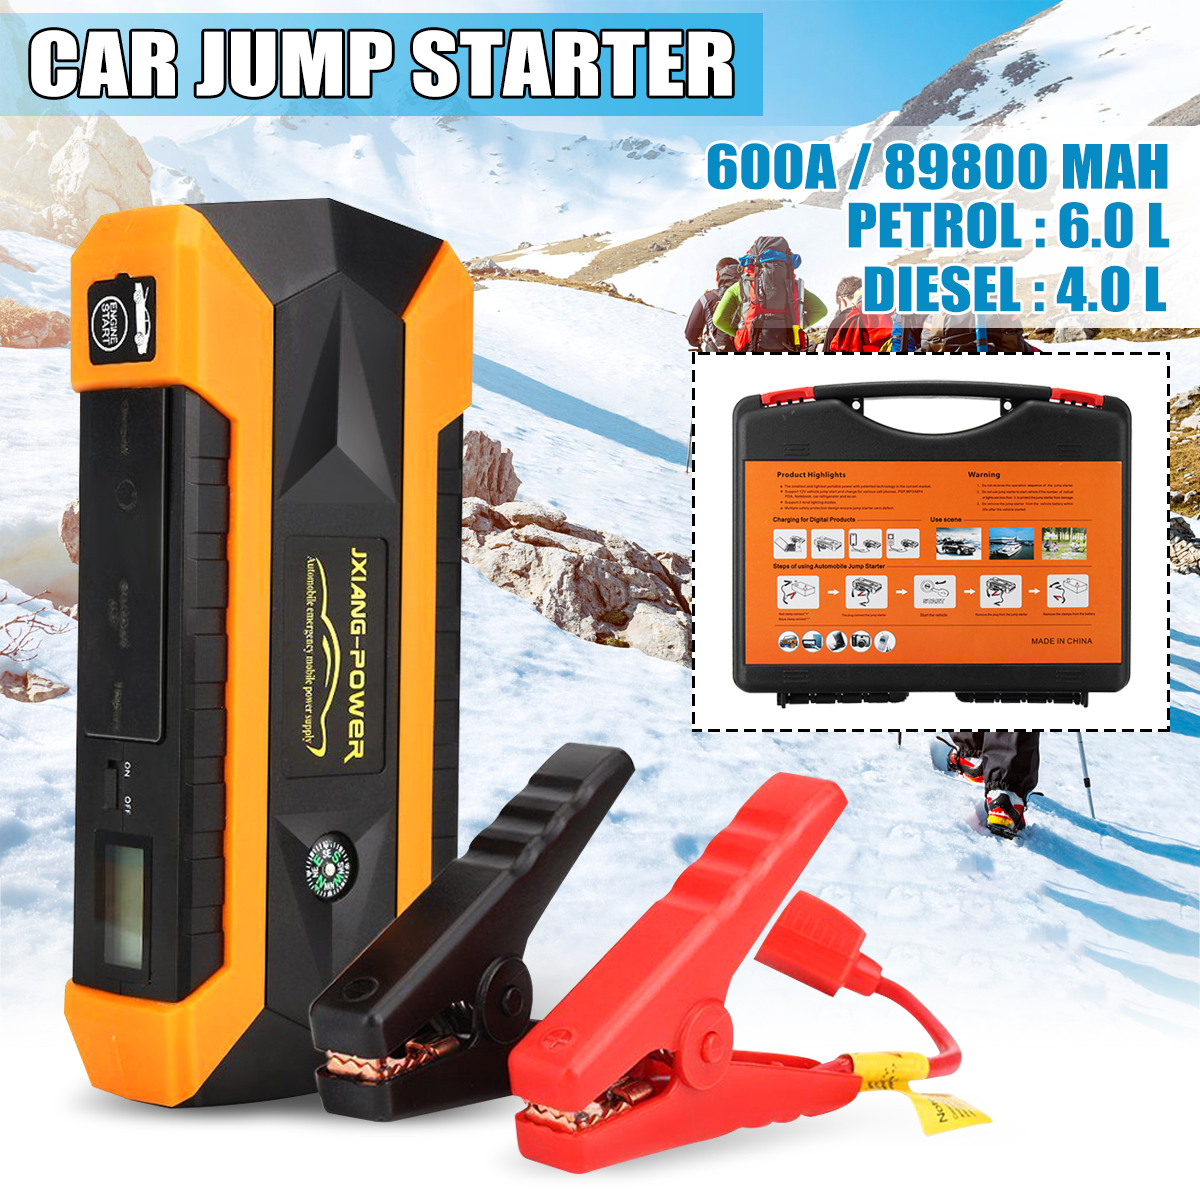 1set 89800mAh 12V 4USB Car Battery Charger Starting Car Jump Starter Booster Power Bank Tool Kit For Auto Starting Device multifunction jump starter 89800mah 12v 4usb 600a portable car battery booster charger booster power bank starting device